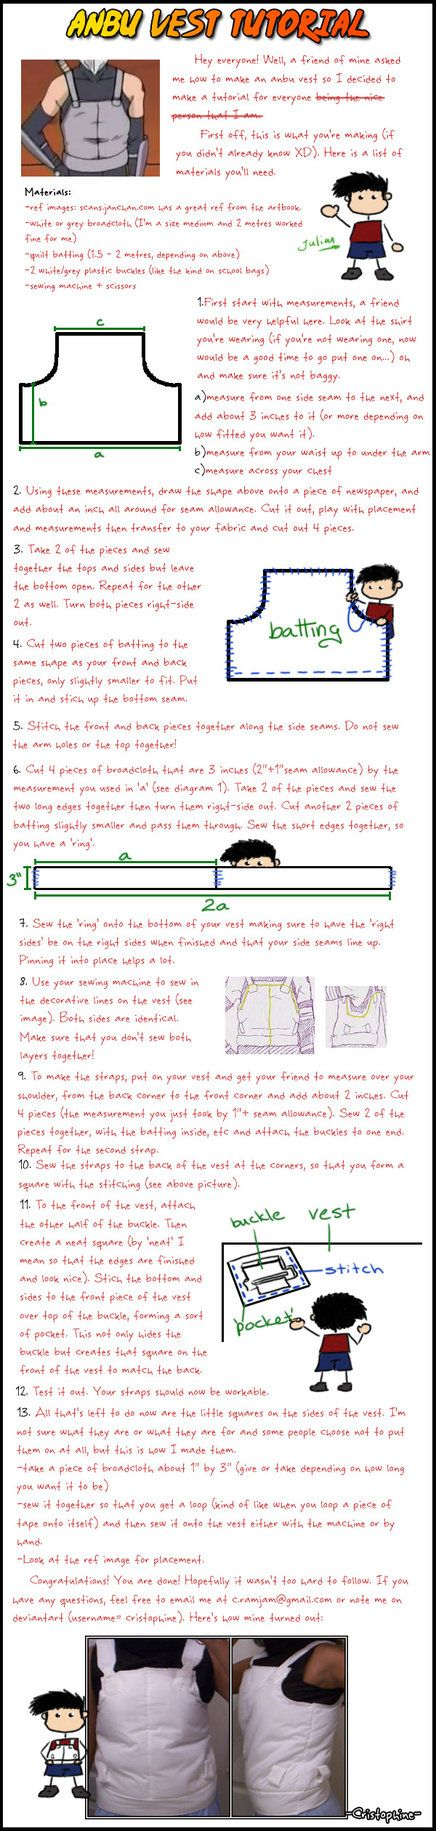 A friend asked me how to make an Anbu vest for cosplay, so I made a tutorial for everyone. This is my first tutorial so all suggestions are greatly appreciated. It's kinda big, sorry 'bout that. Oh...